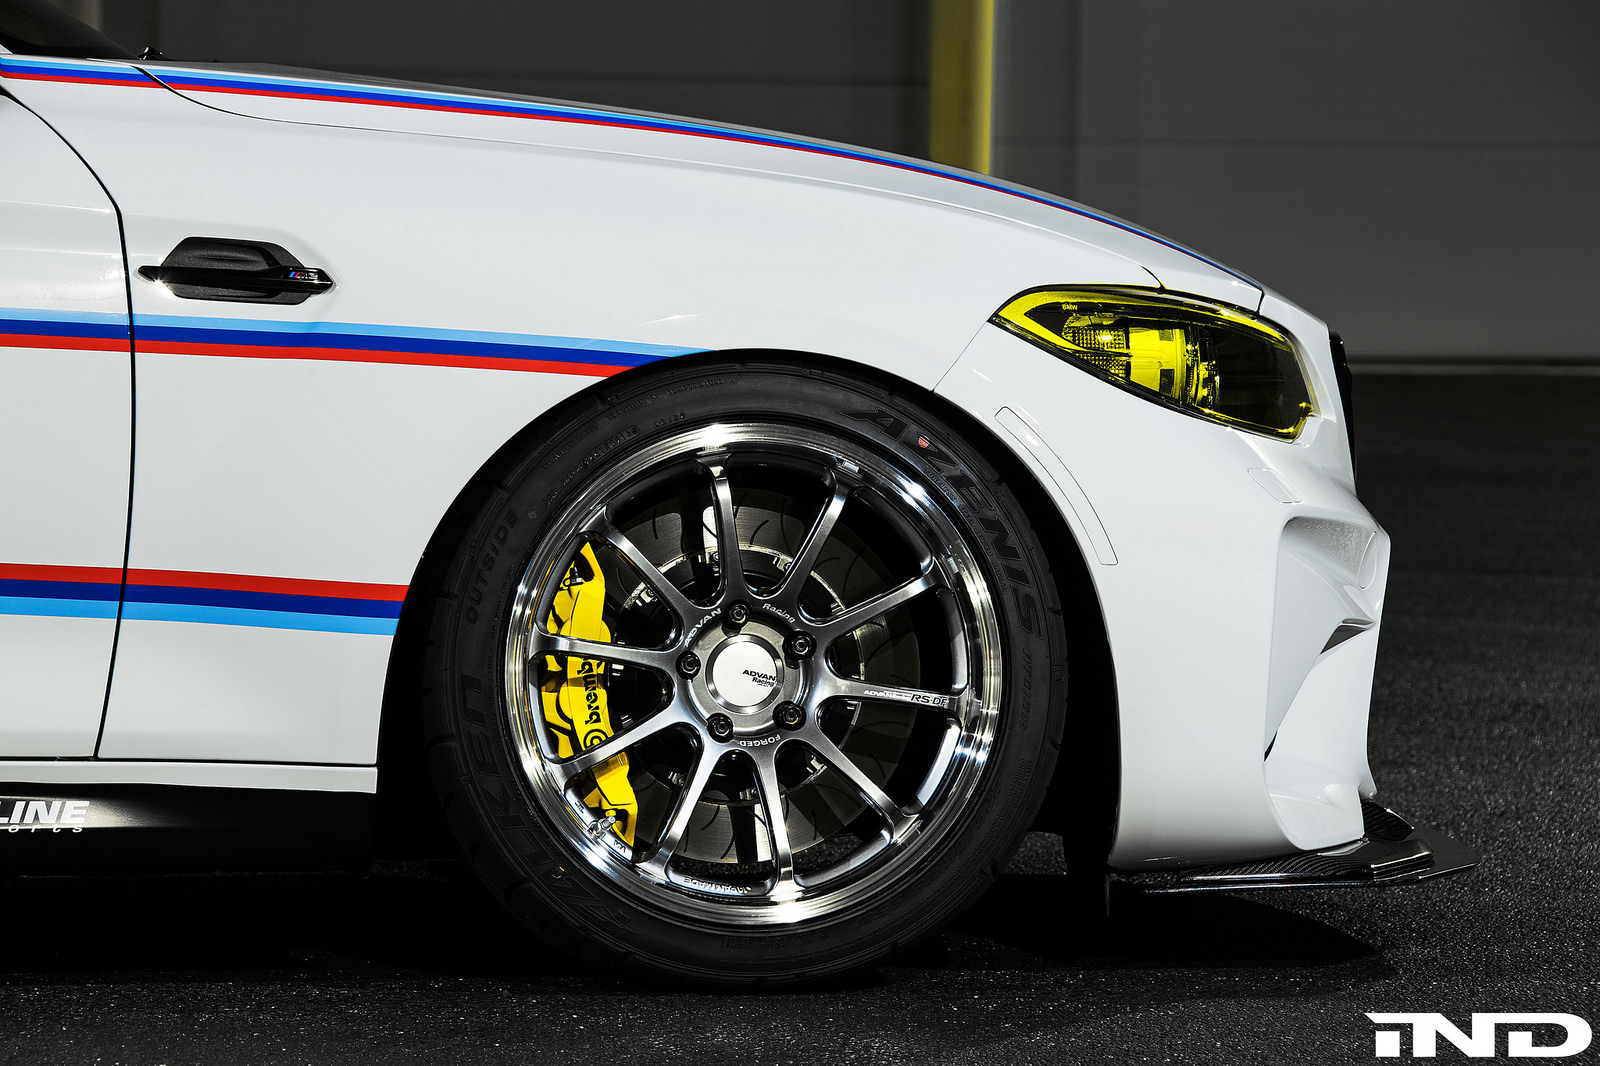 bmw-m2-m4-by-ind-distribution-17